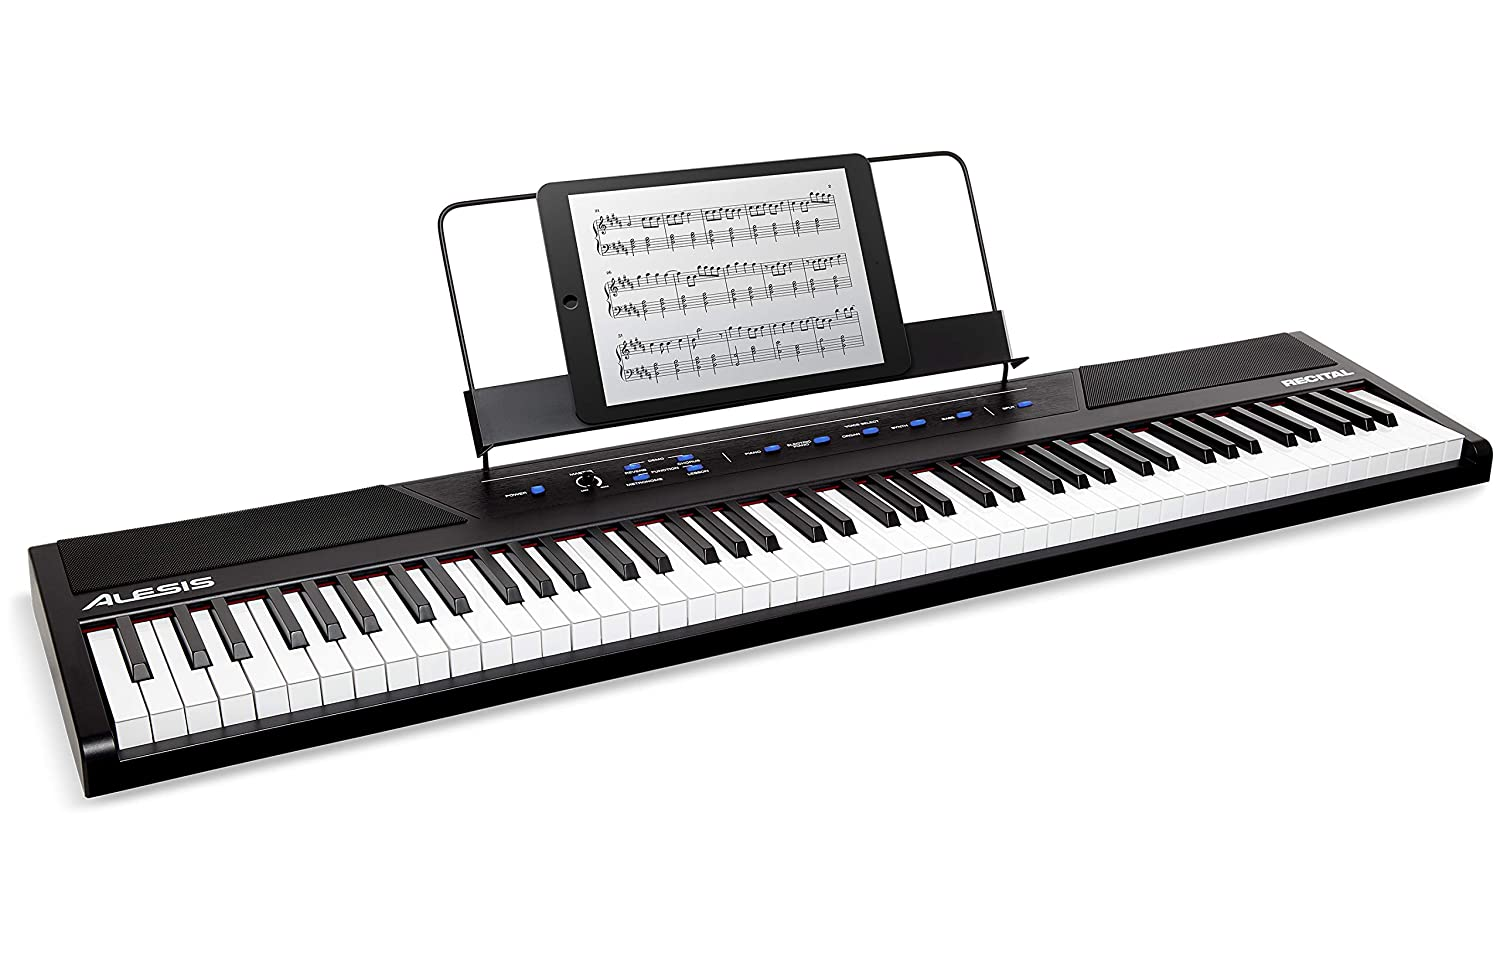 Details about Alesis Recital - 88-Key Beginner Digital Piano / Keyboard  with Full-Size